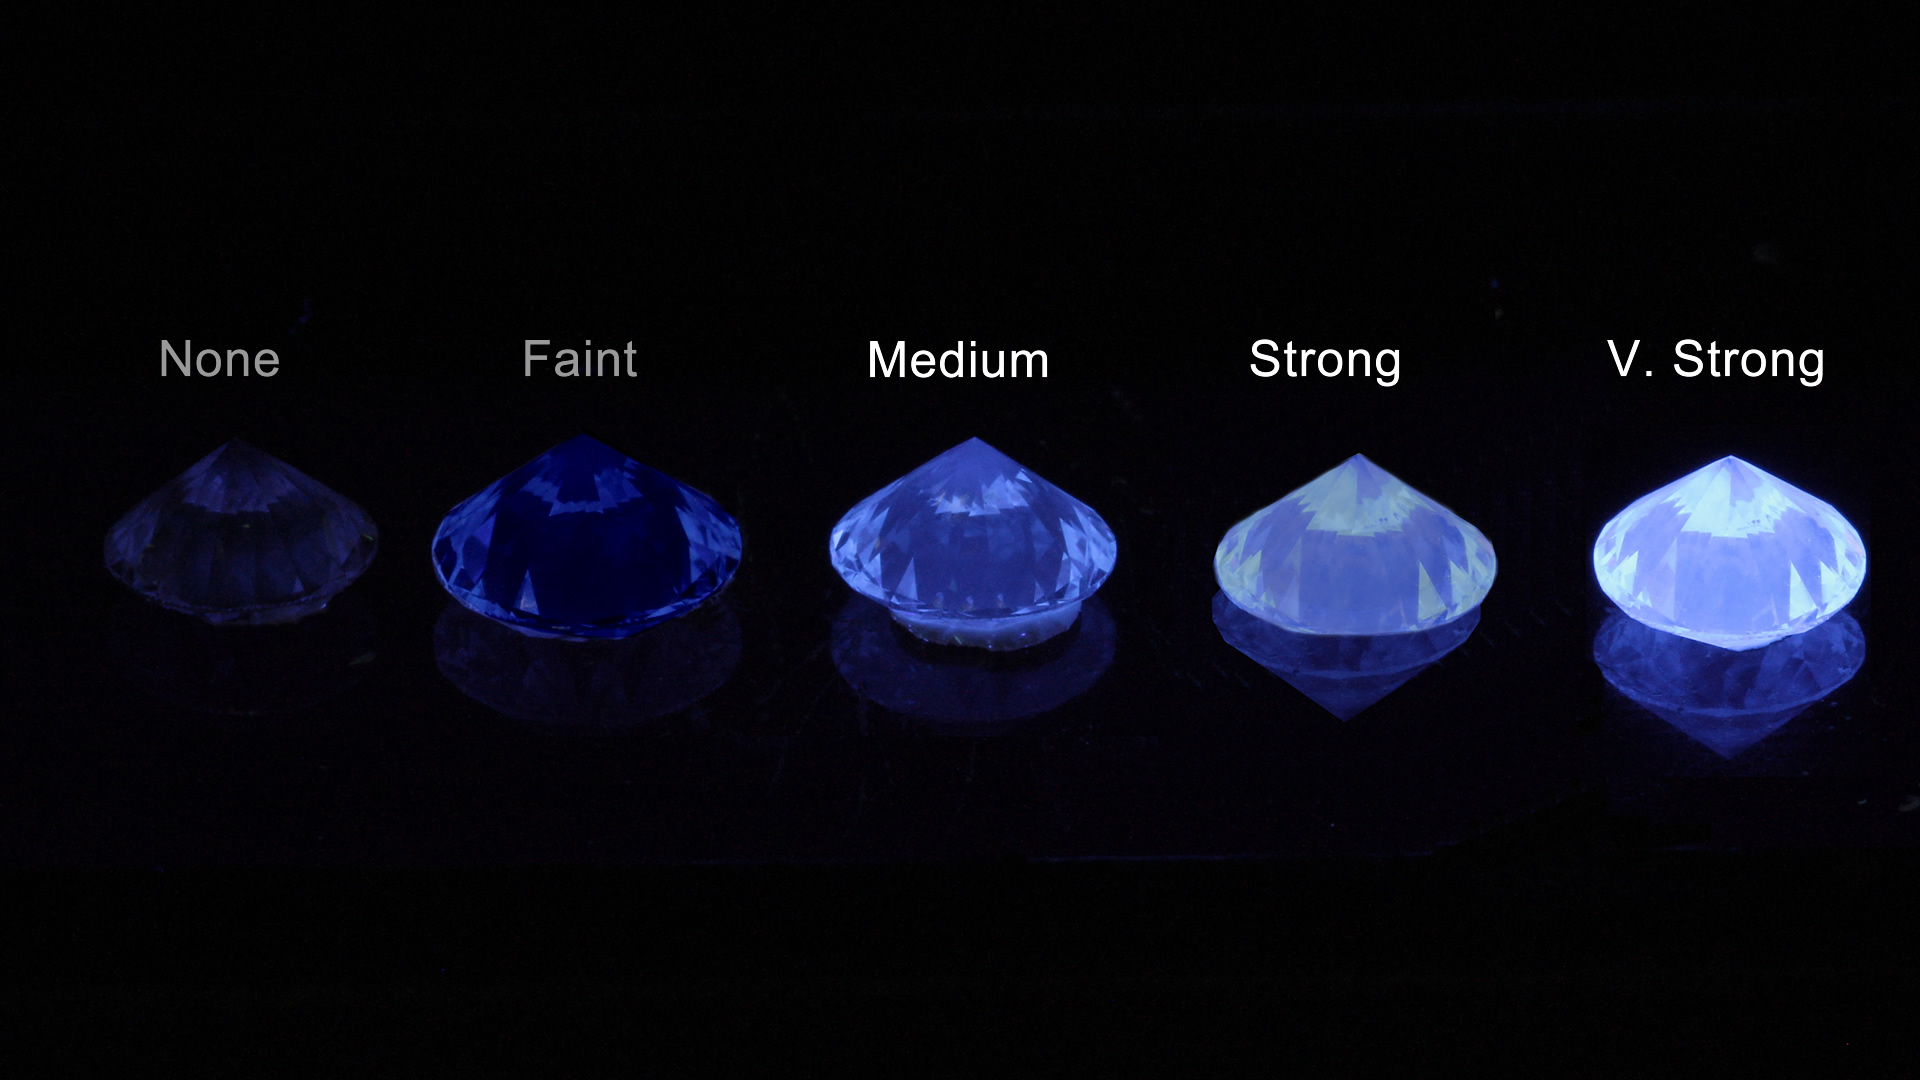 Diamond fluorescence, what is it?